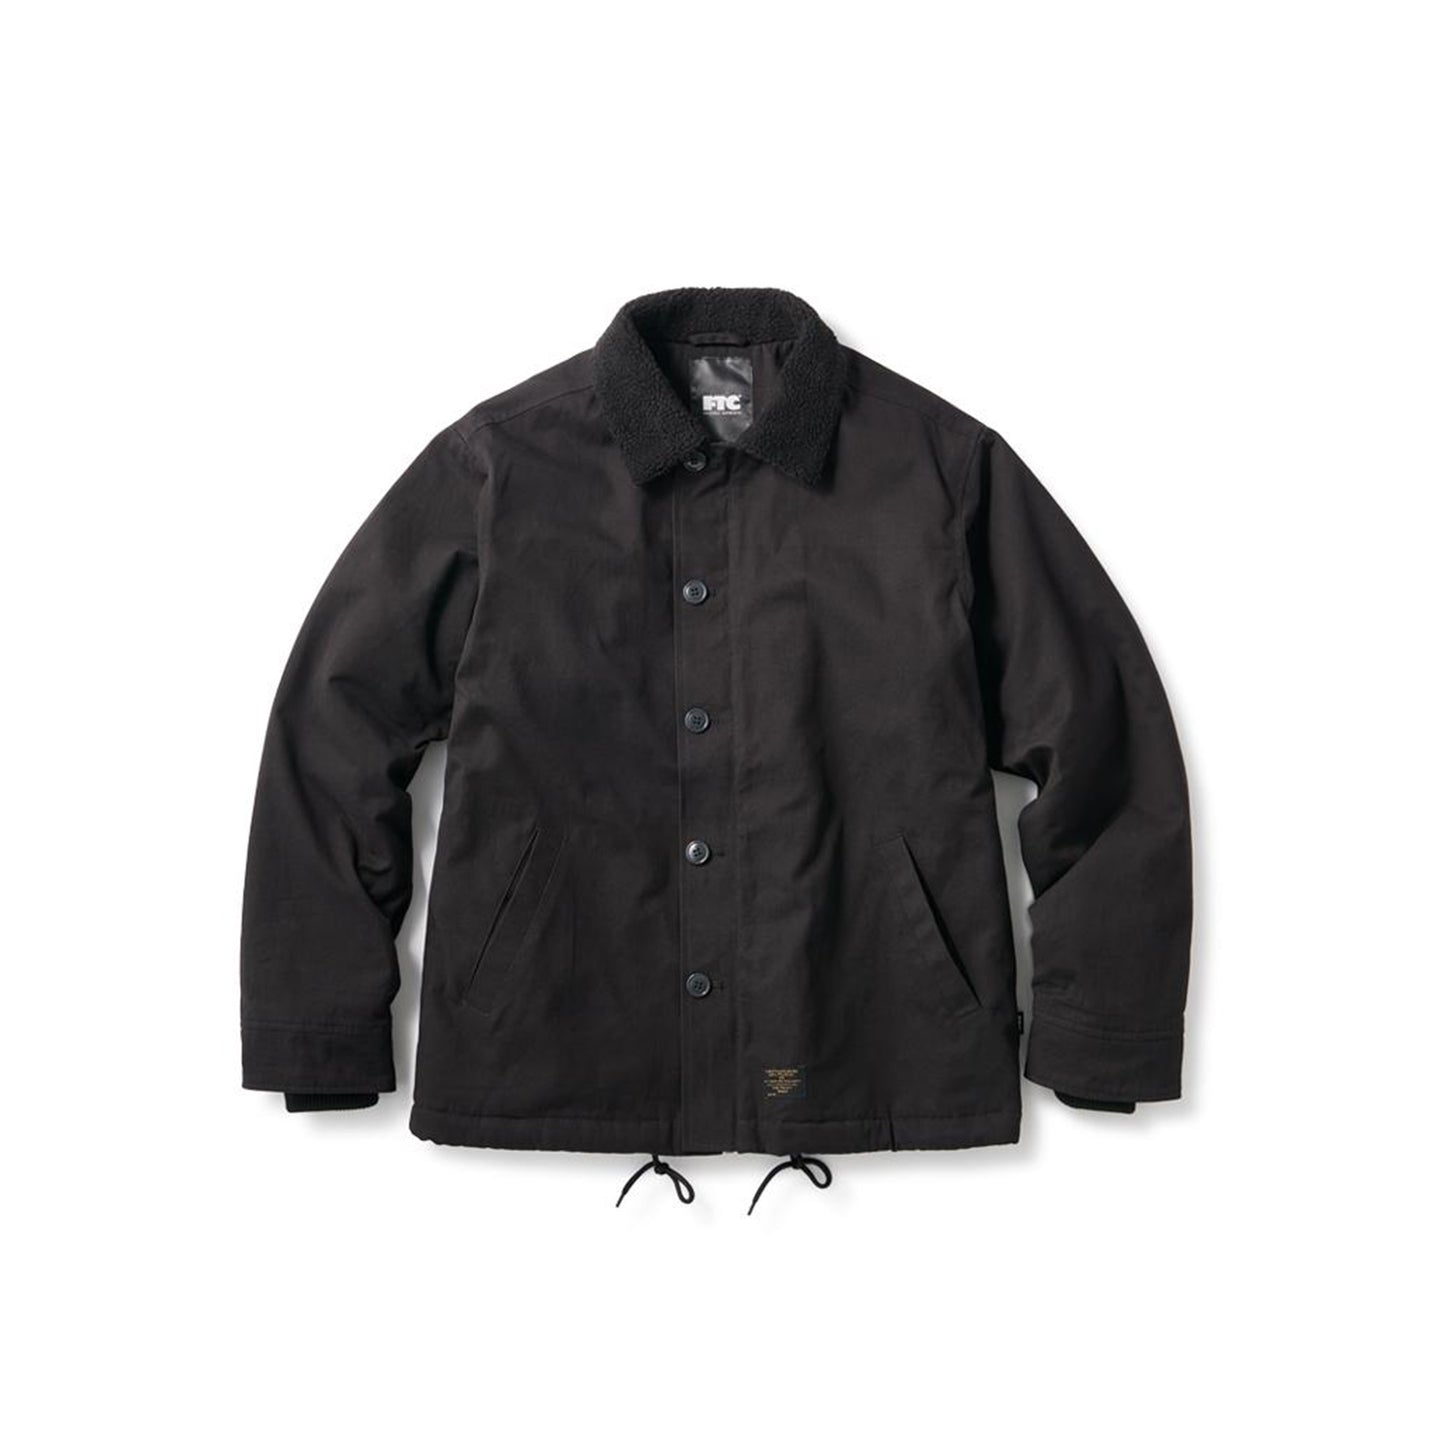 FTC N-1 Deck Jacket Black